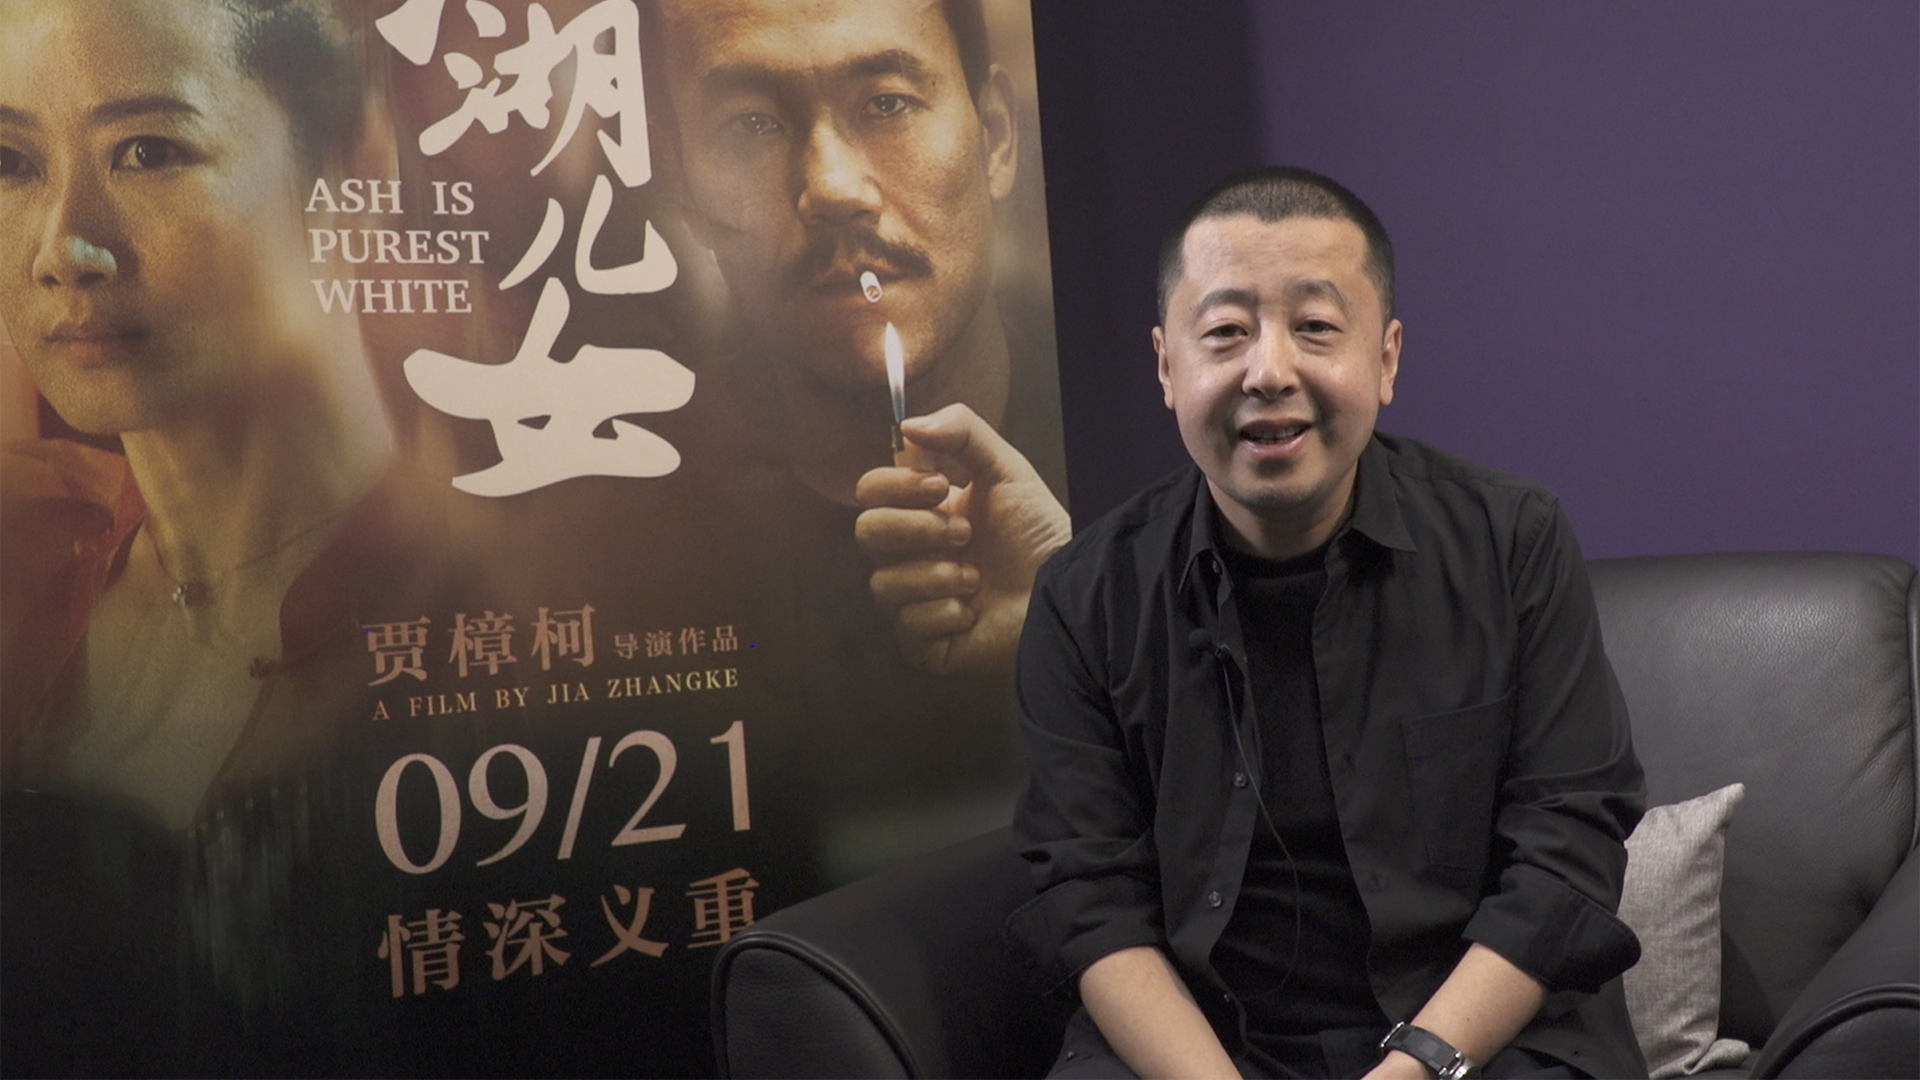 """Behind the Scenes   Jia Zhangke on """"Ash is the purest white"""""""